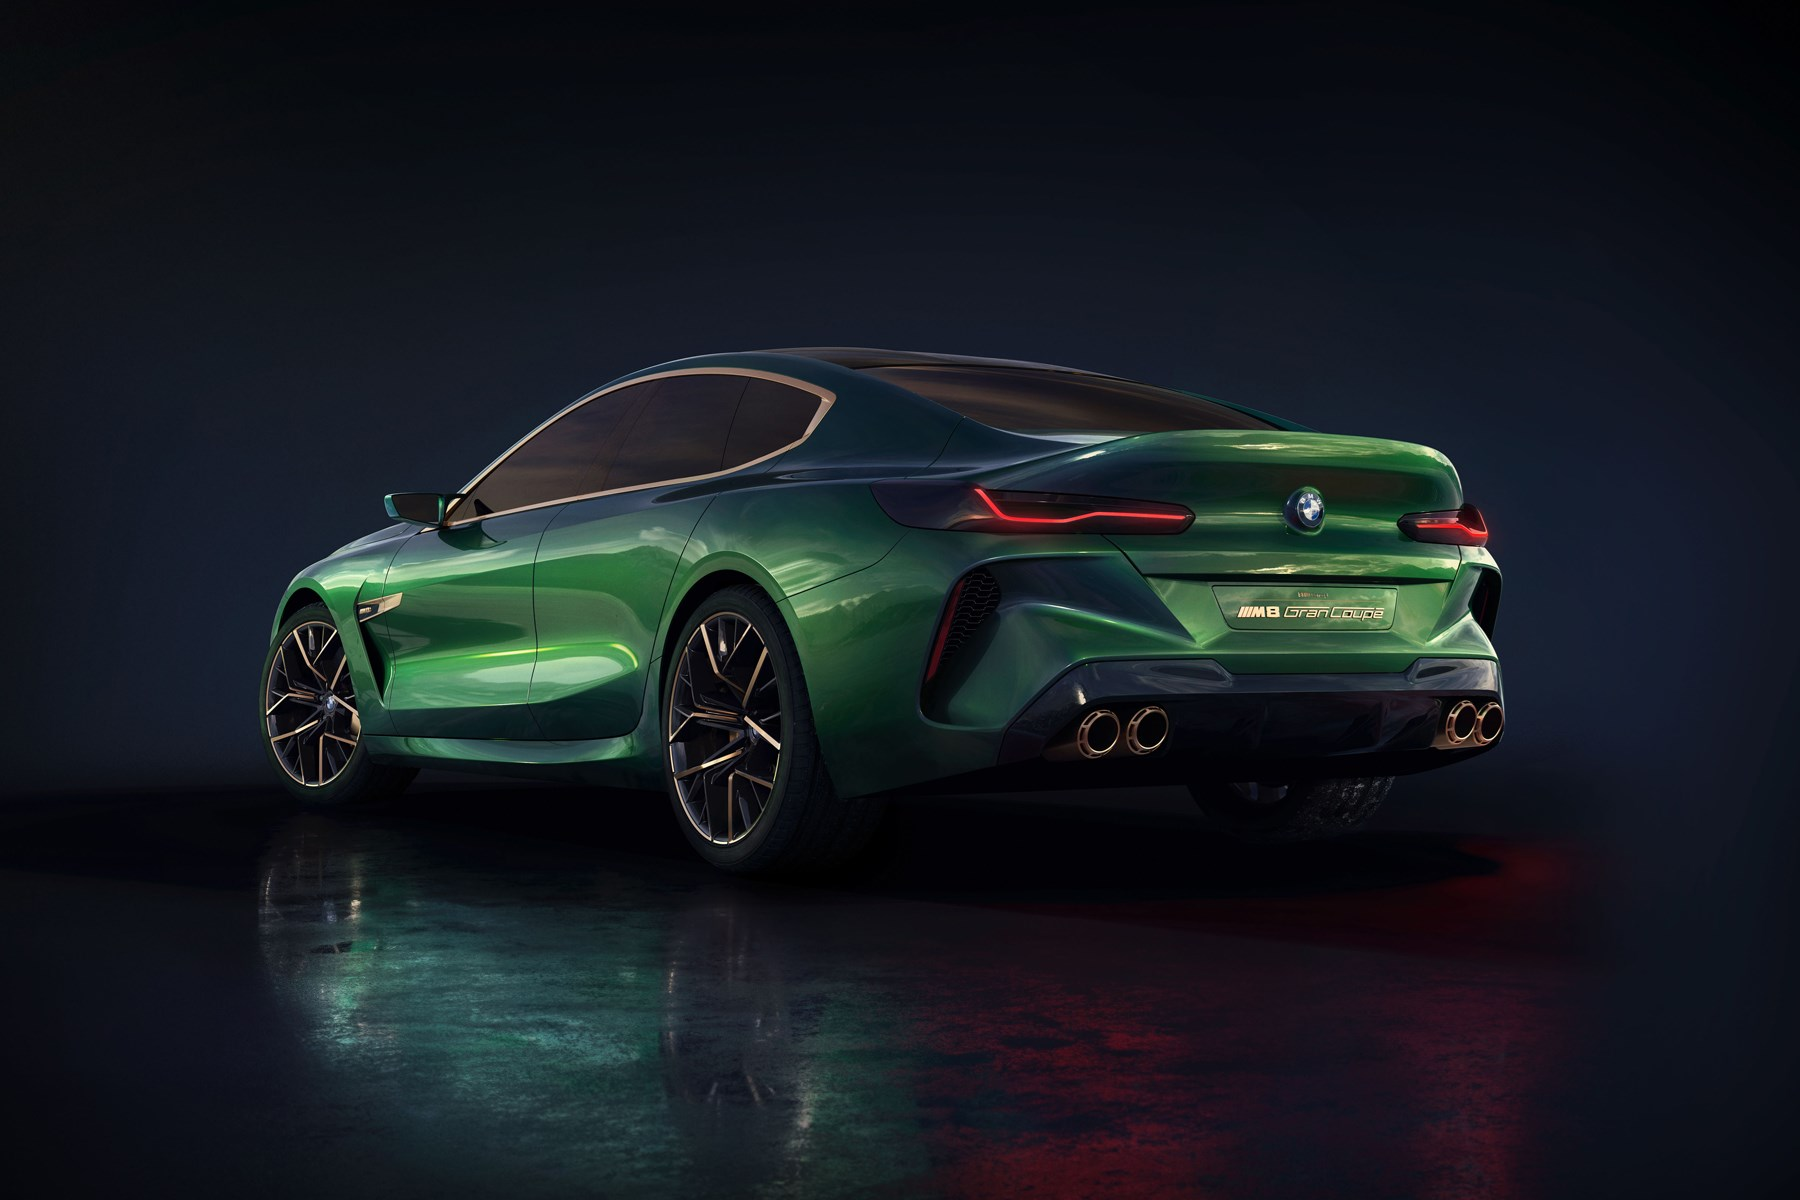 It S Official The New Bmw Concept M8 Gran Coupe Car